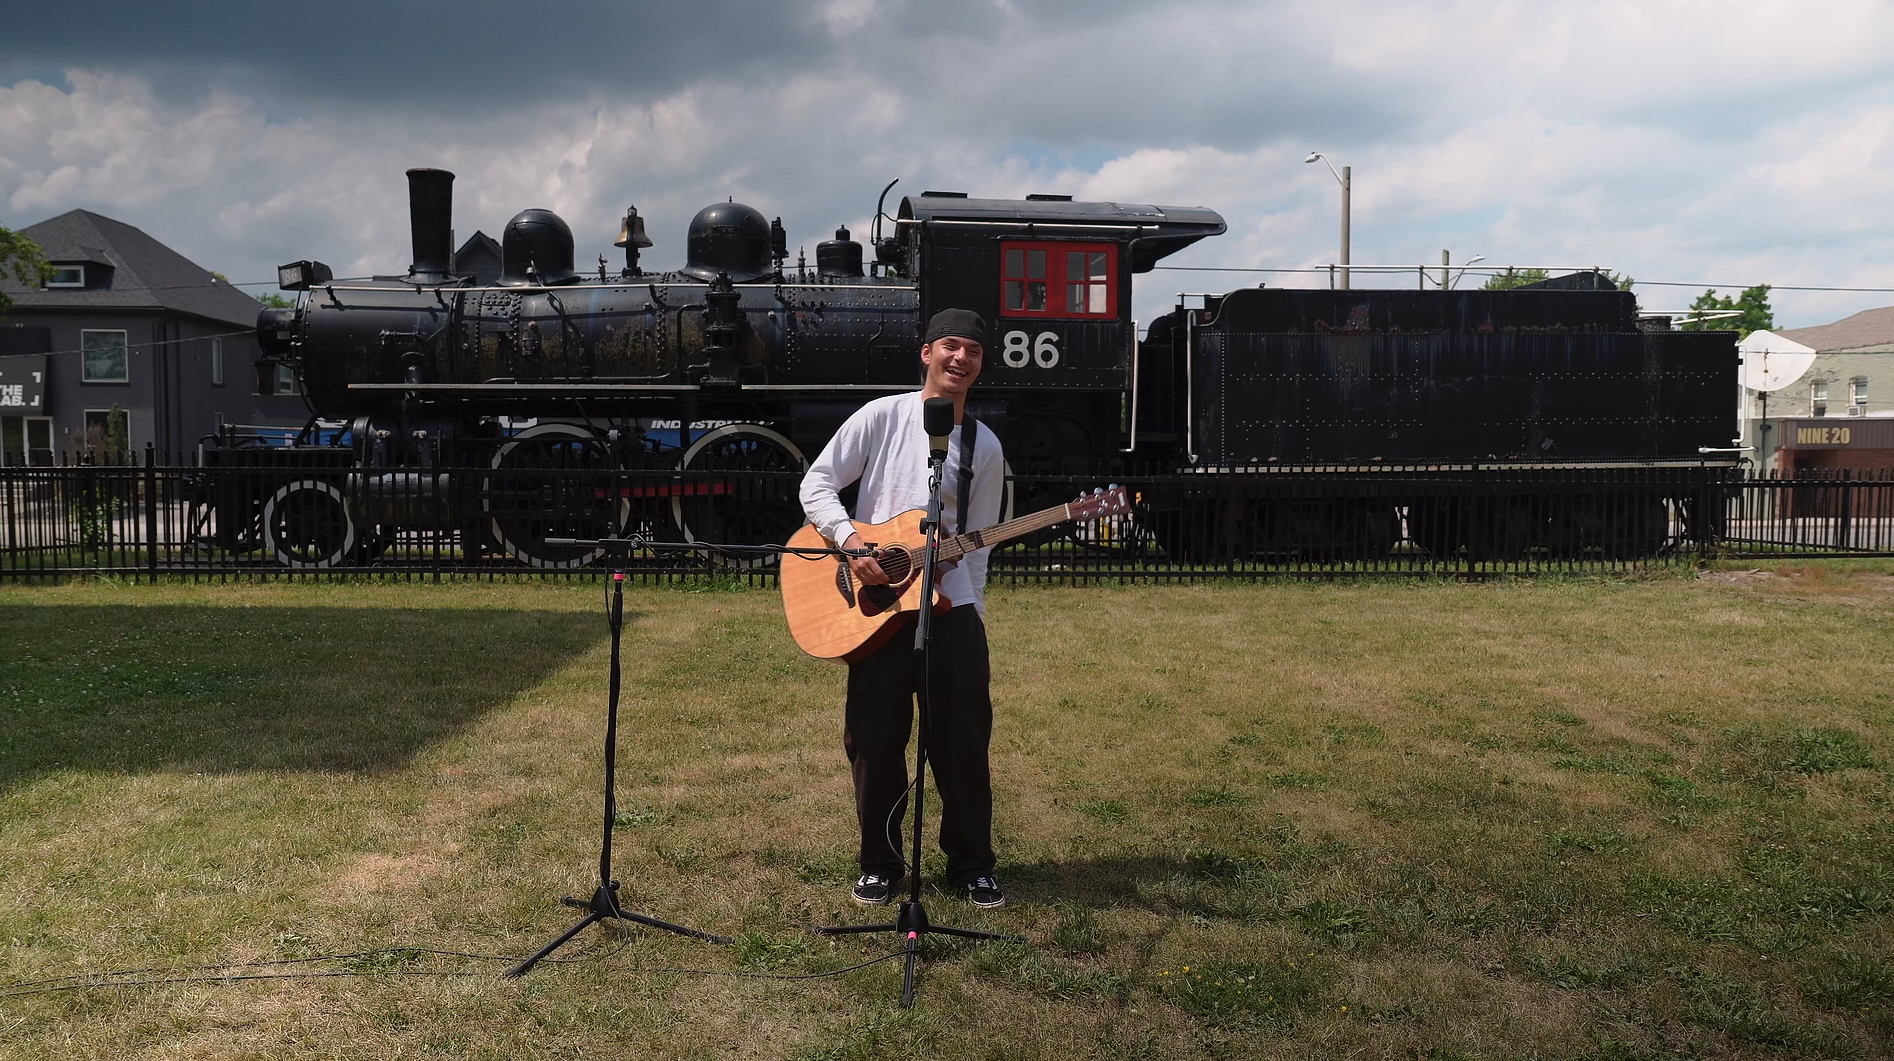 A man in a white shirt and black pants holds a guitar in front of a large black steam engine.